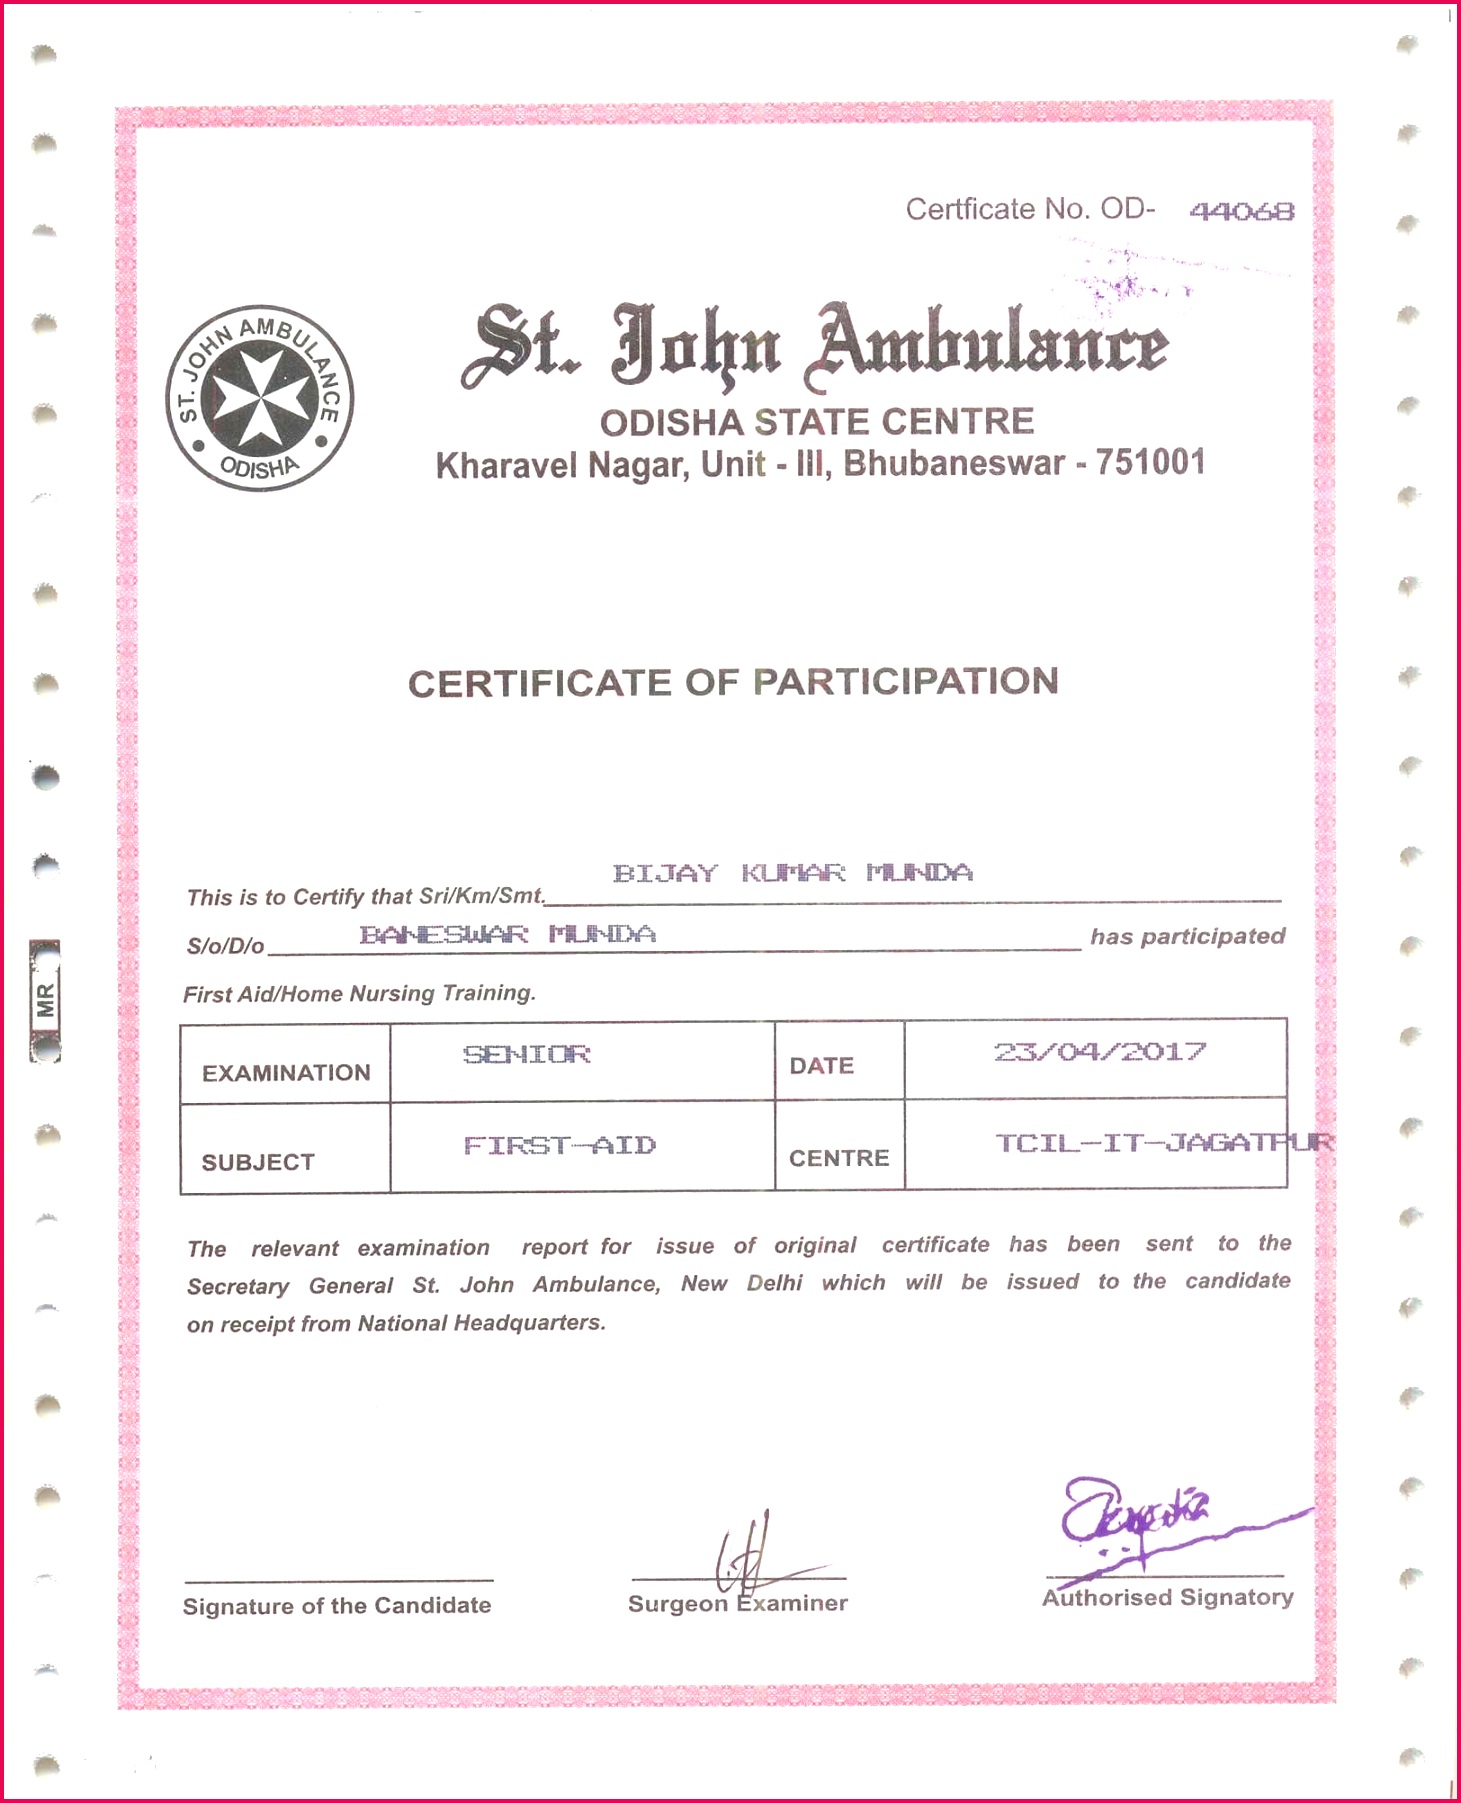 training certificates templates word cool new training certificate format word doc new 12 certificate template of training certificates templates word